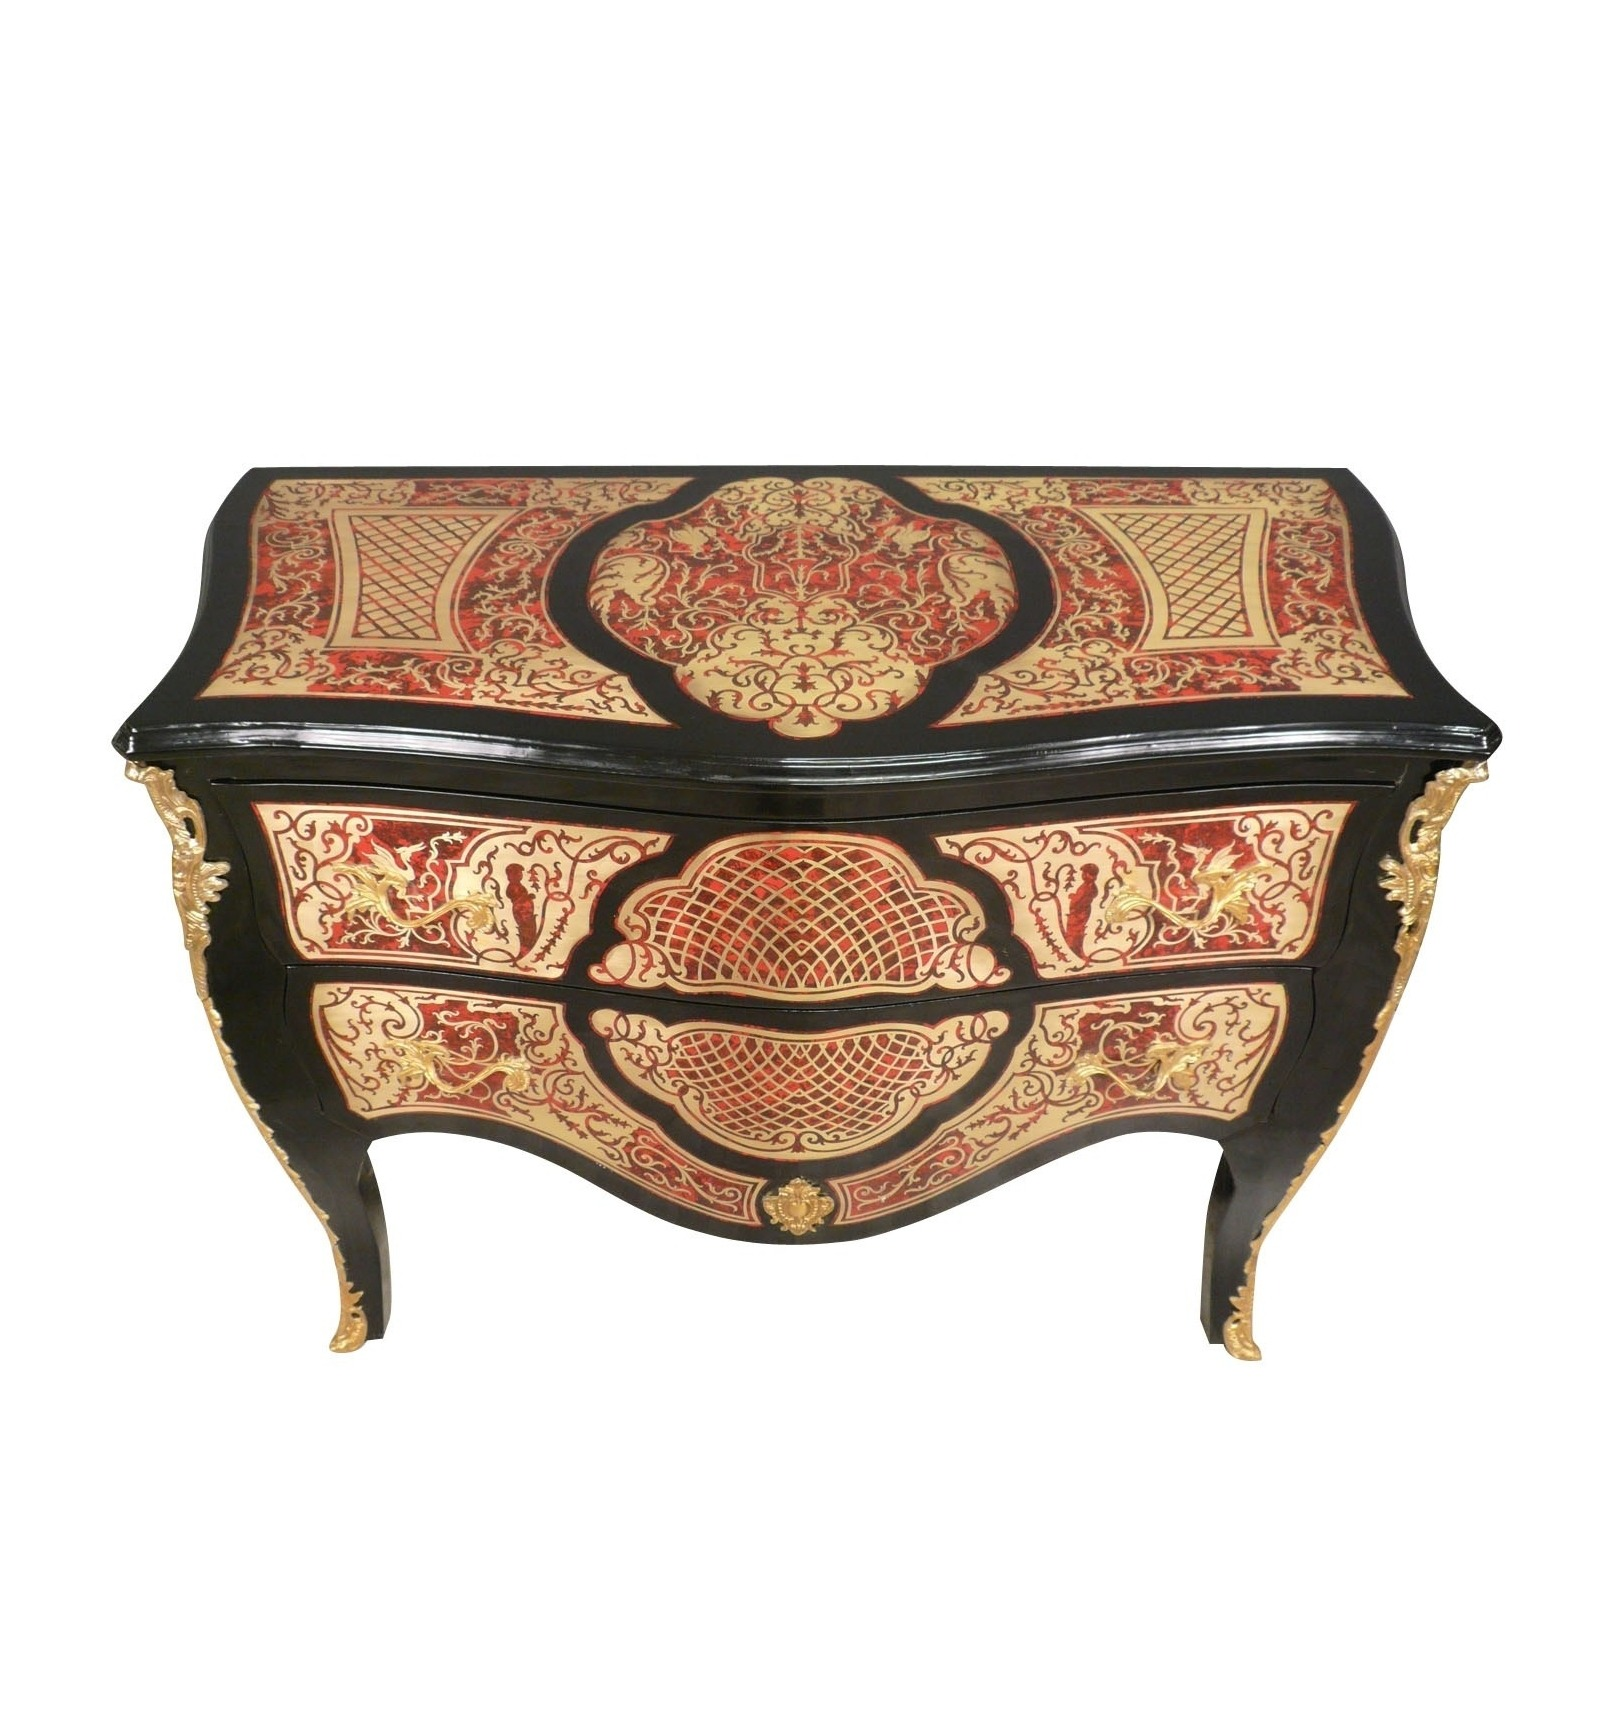 commode louis xv en marqueterie boulle mobilier de style. Black Bedroom Furniture Sets. Home Design Ideas